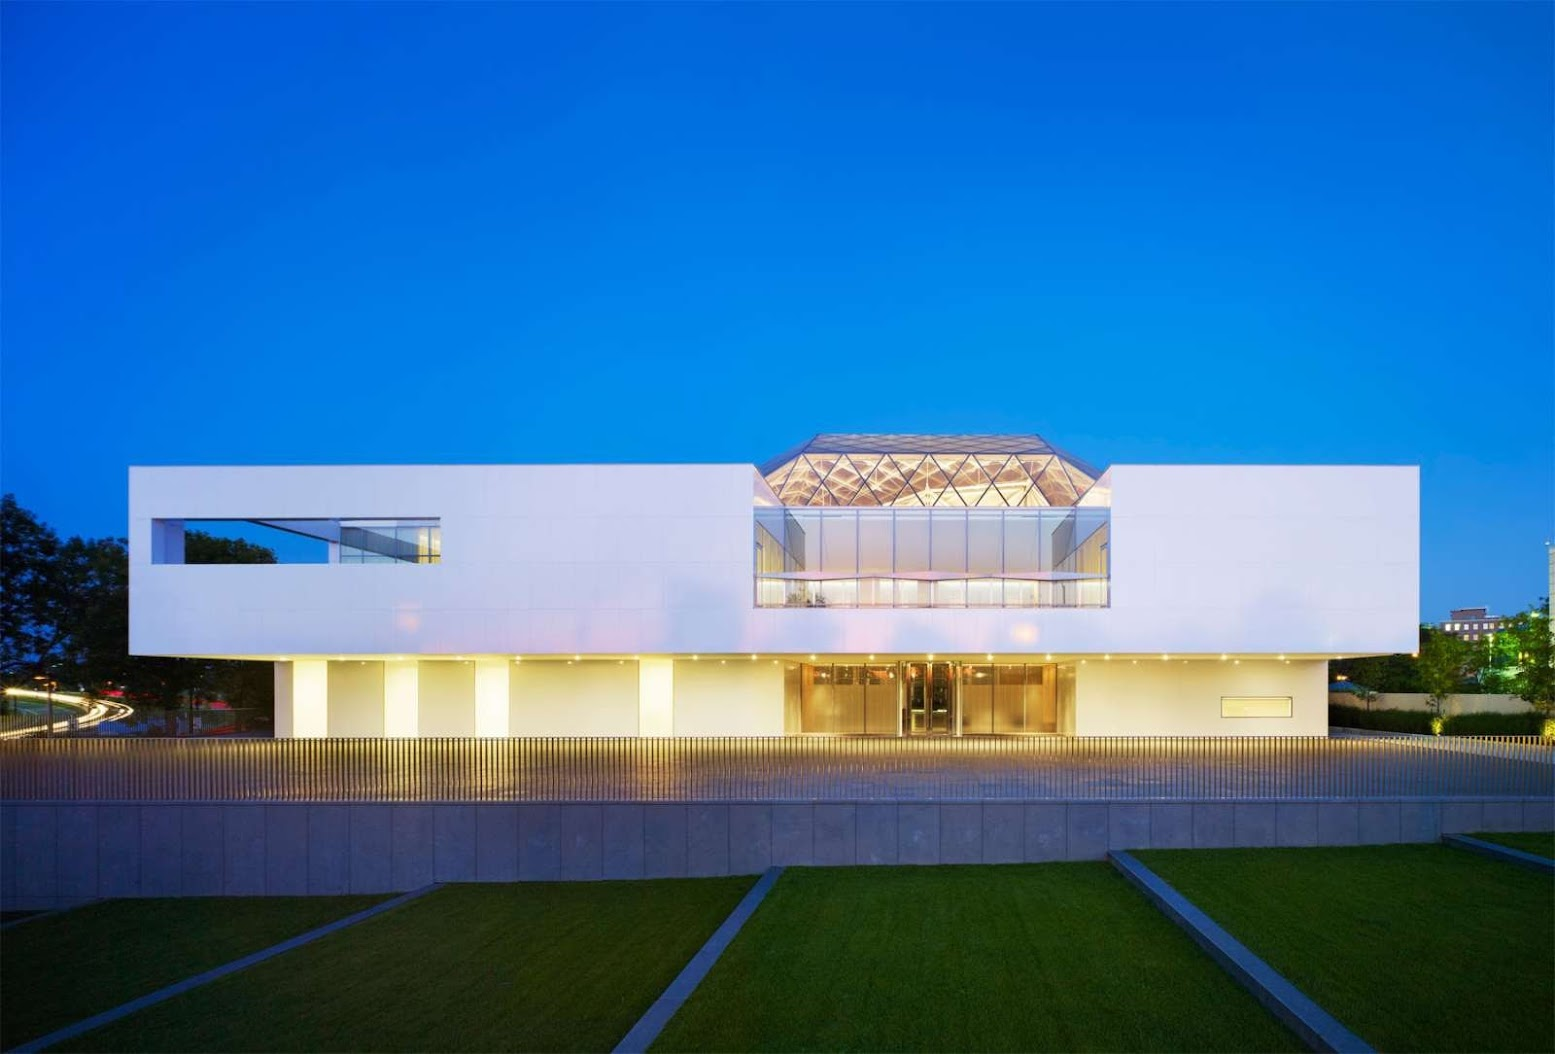 Ottawa, Ontario, Canada: [DELEGATION OF THE ISMAILI IMAMAT BY MAKI AND ASSOCIATES]